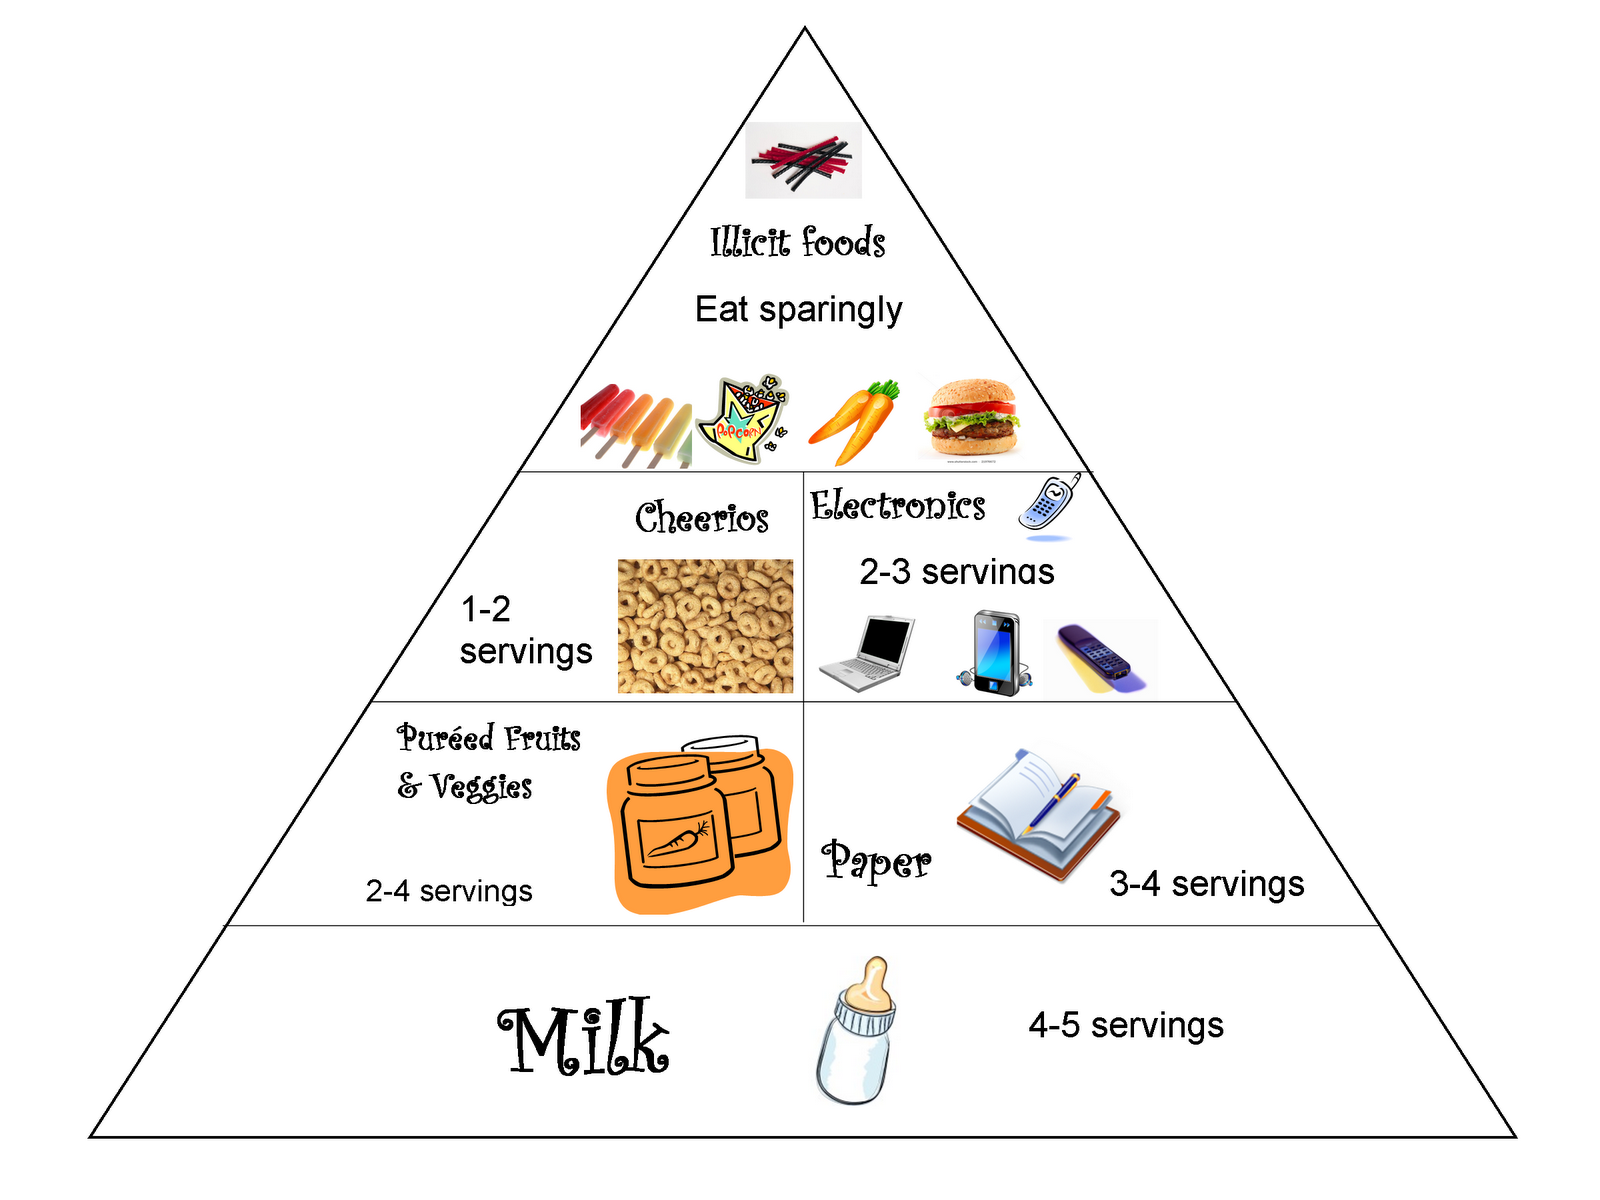 My Awesome Brother Jared Helped Me Make A Food Pyramid Of Things Alex Eats This Is Not Necessarily Healthy Or Balanced Diet But We Are Trying To Expose